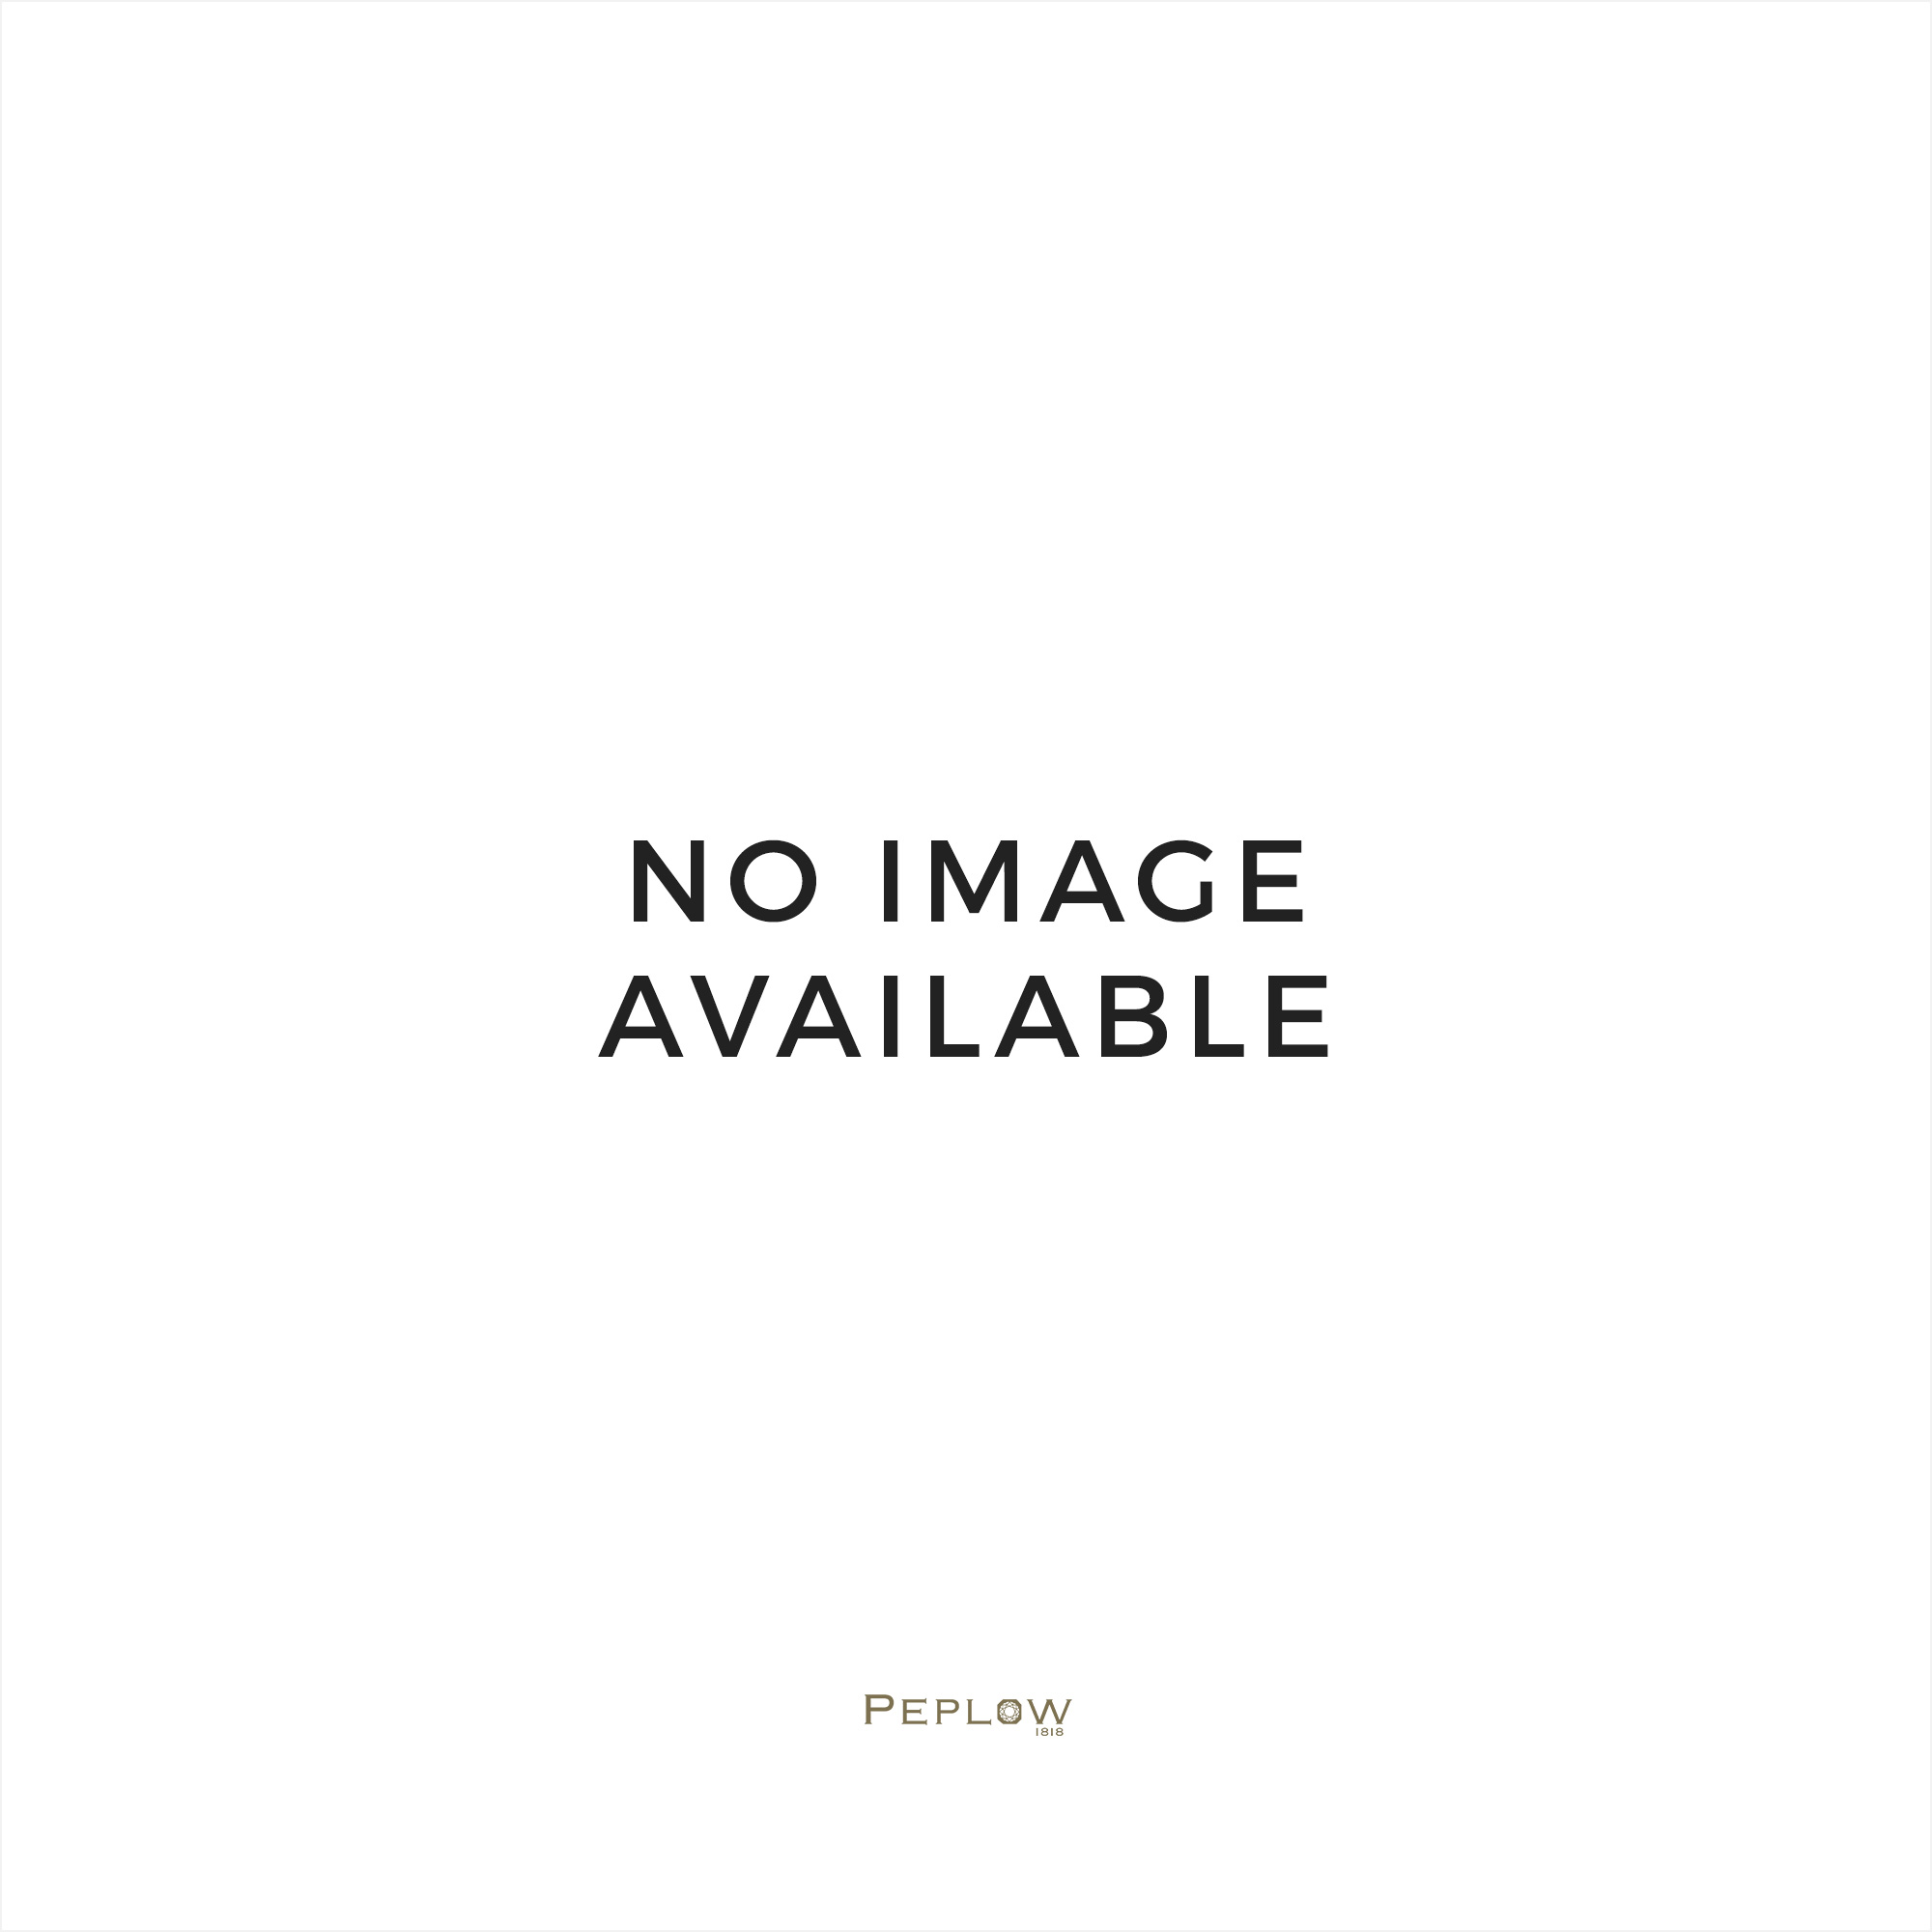 Citizen Watches Citizen Gents Stainless Steel Nighthawk Watch